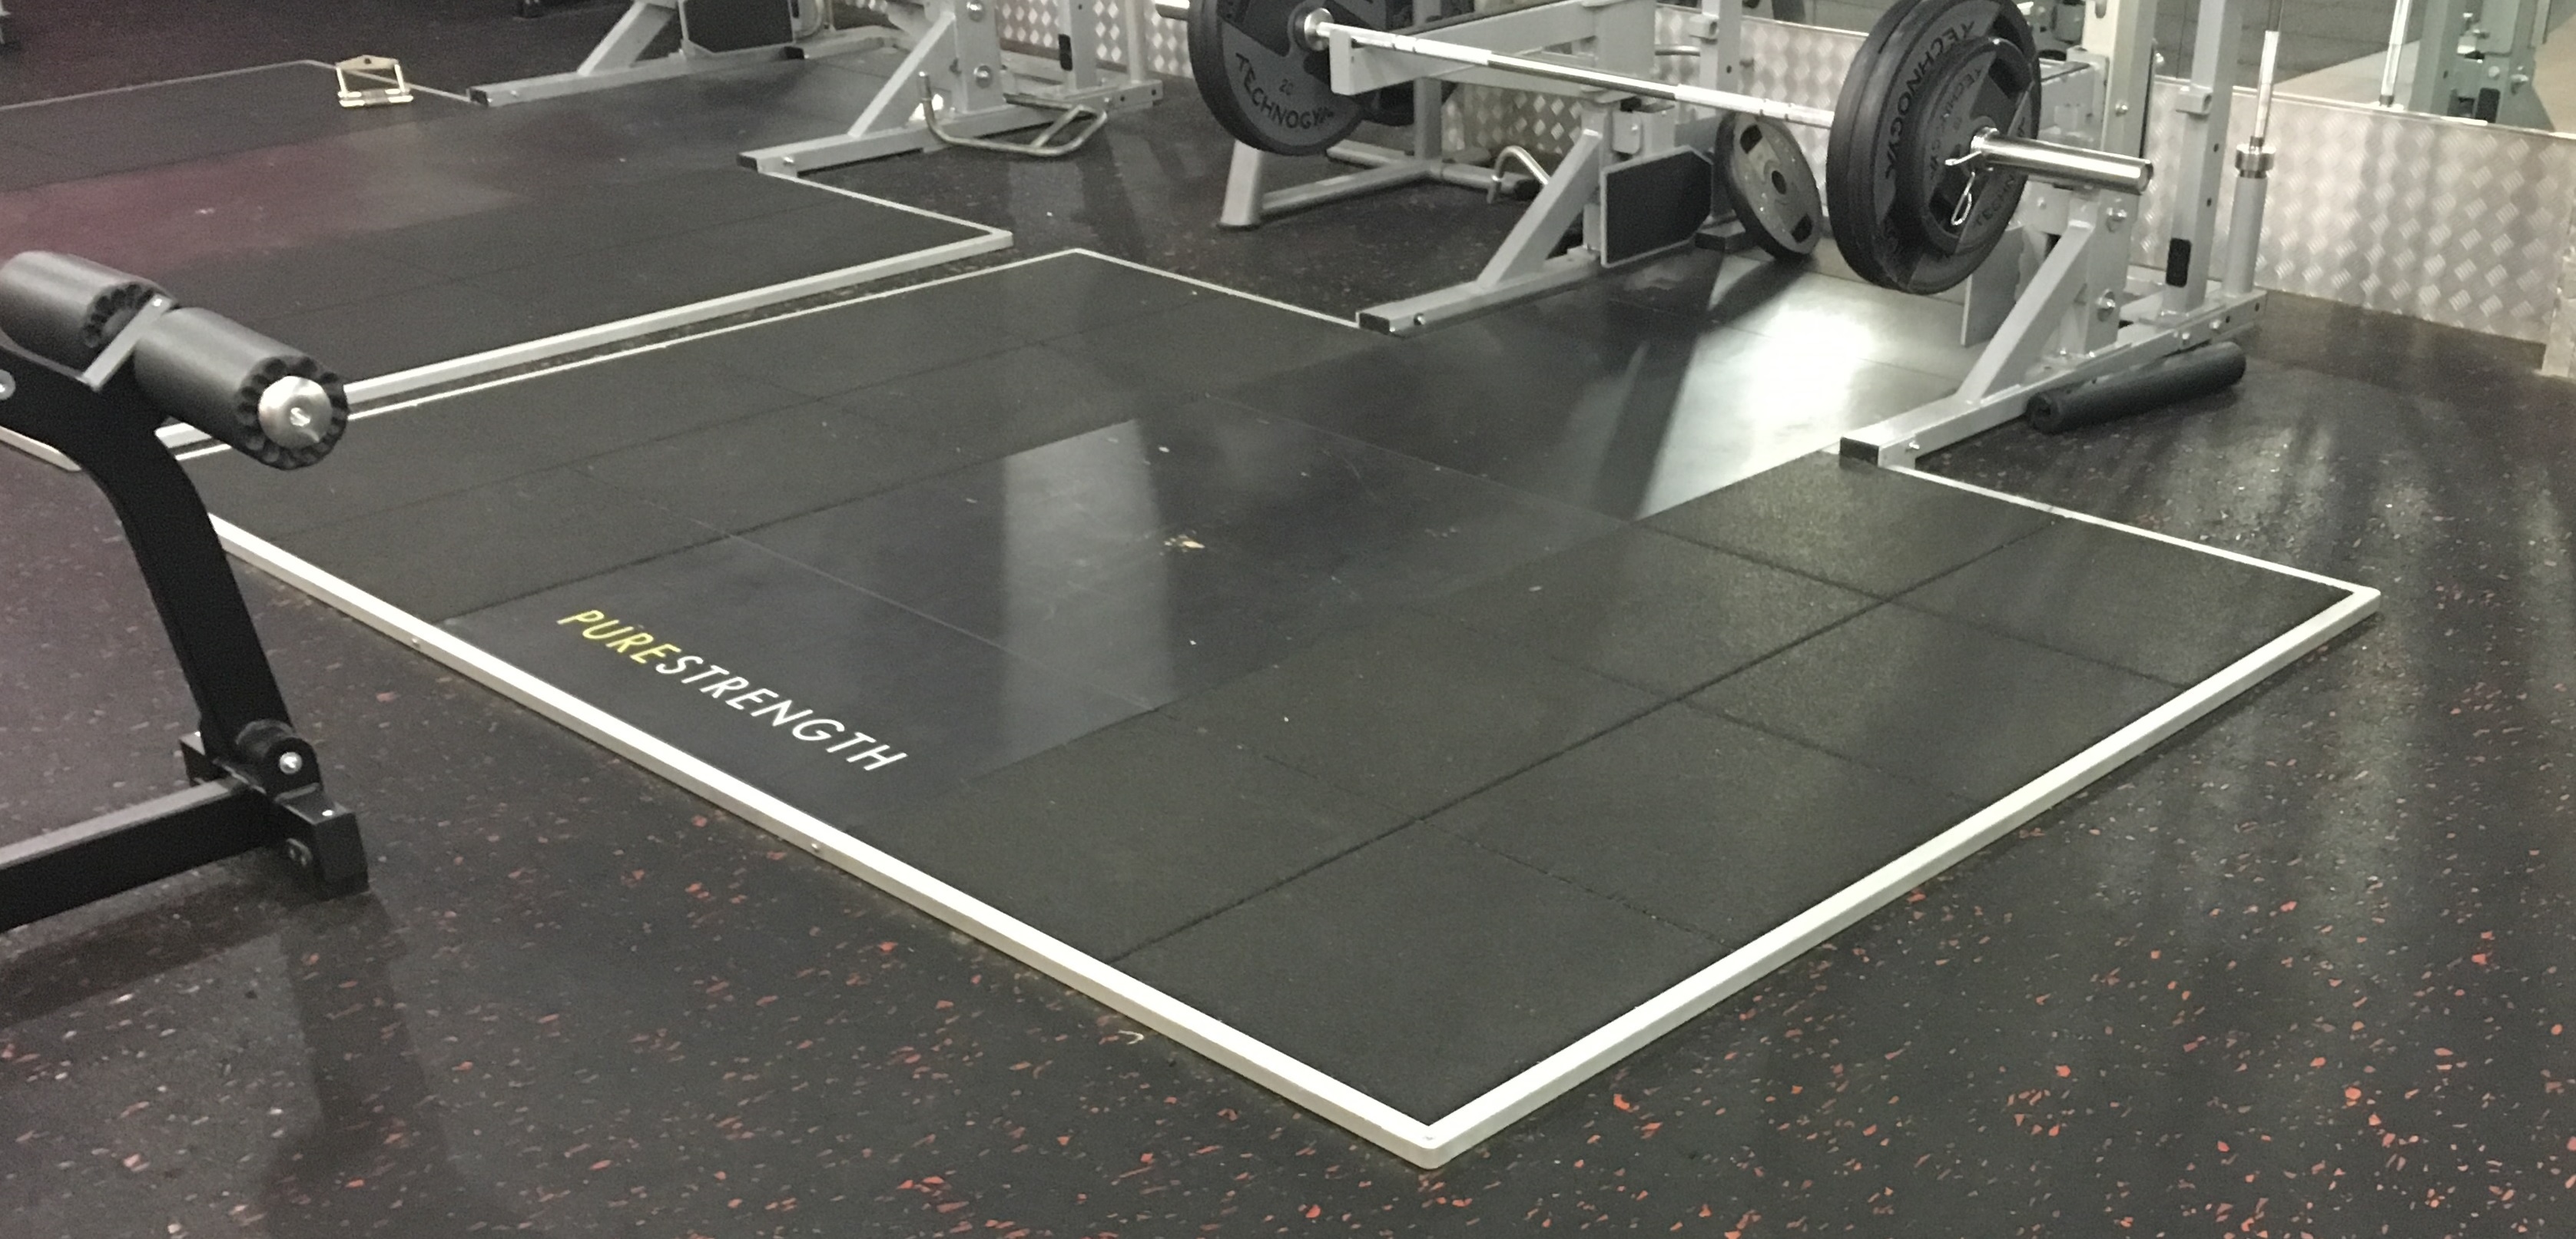 Crossfit rubber tiles gym tiles the rubber company rubber gym tiles dailygadgetfo Image collections